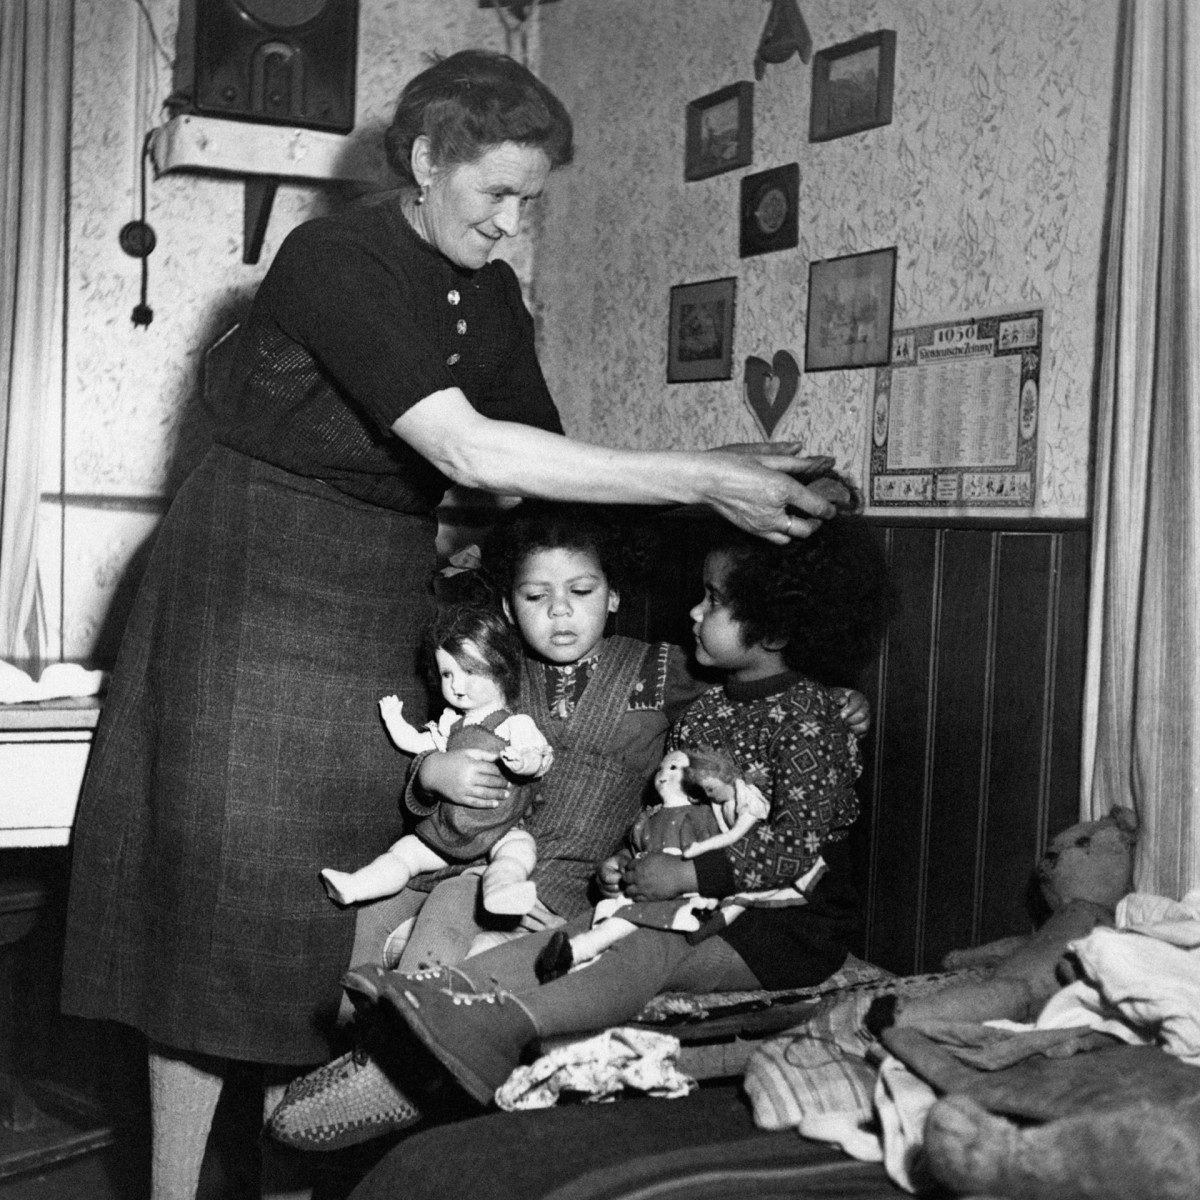 A German woman taking care of two mixed-race German children, c. 1950s.